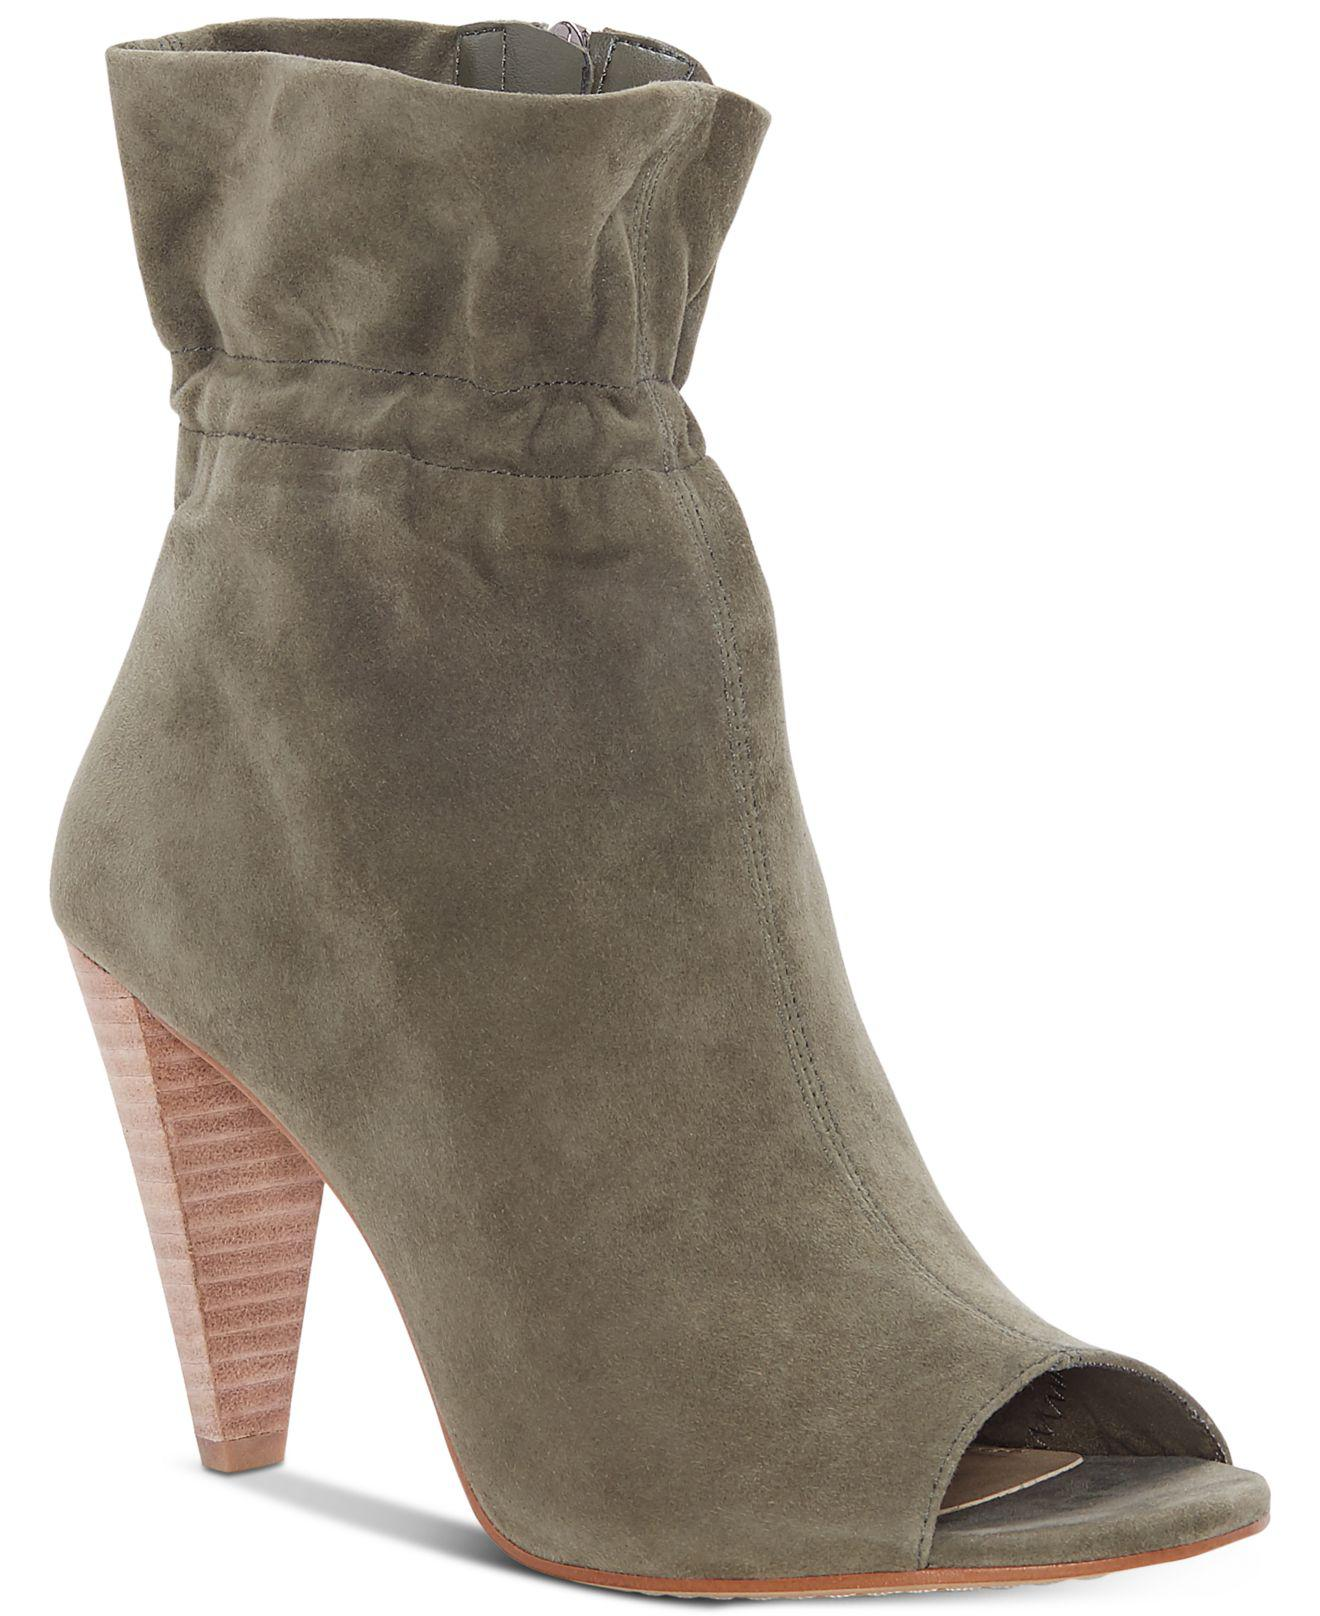 Vince Camuto Addiena Paperbag Top Leather Booties 5lyphH